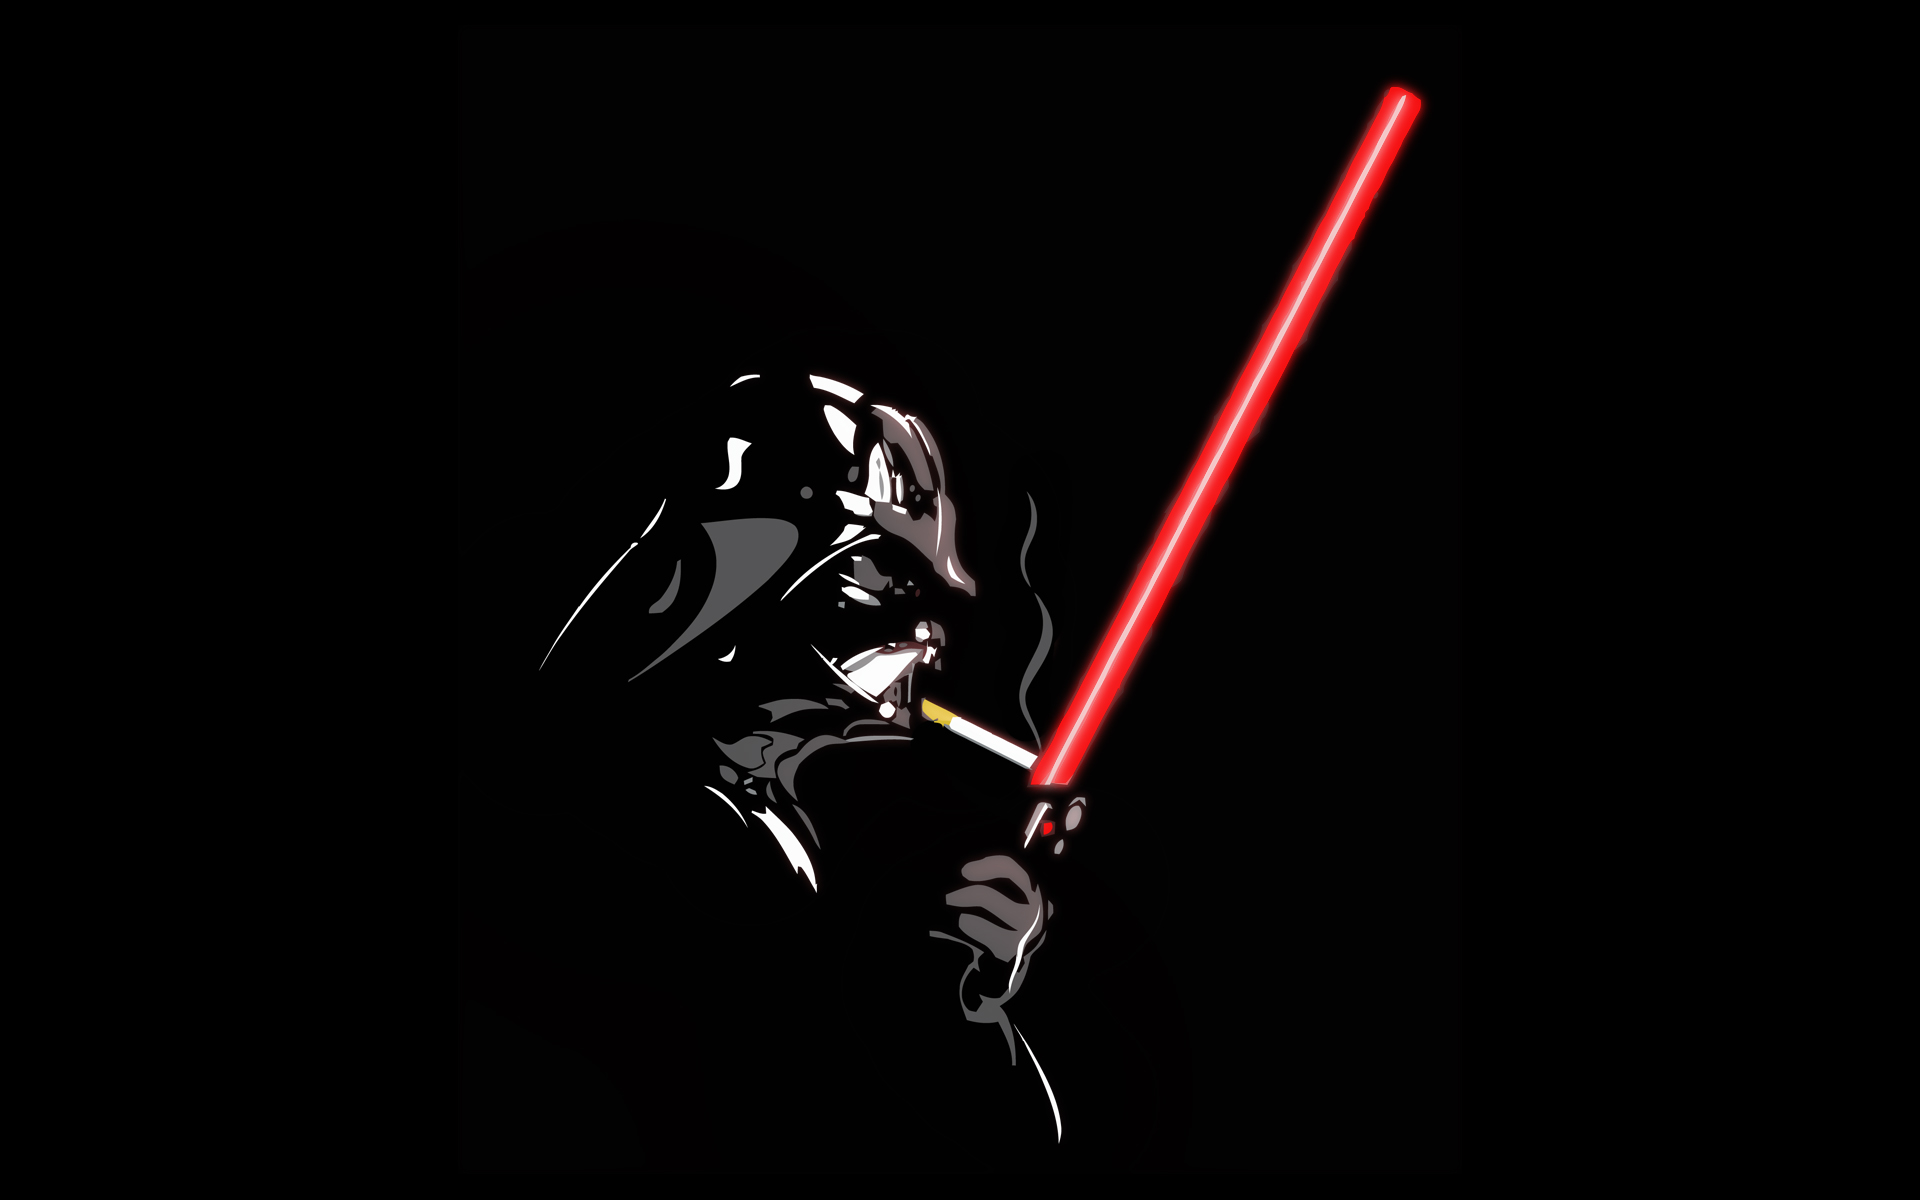 Smoking Star Wars Lightsabers Darth Vader Cigarettes Black